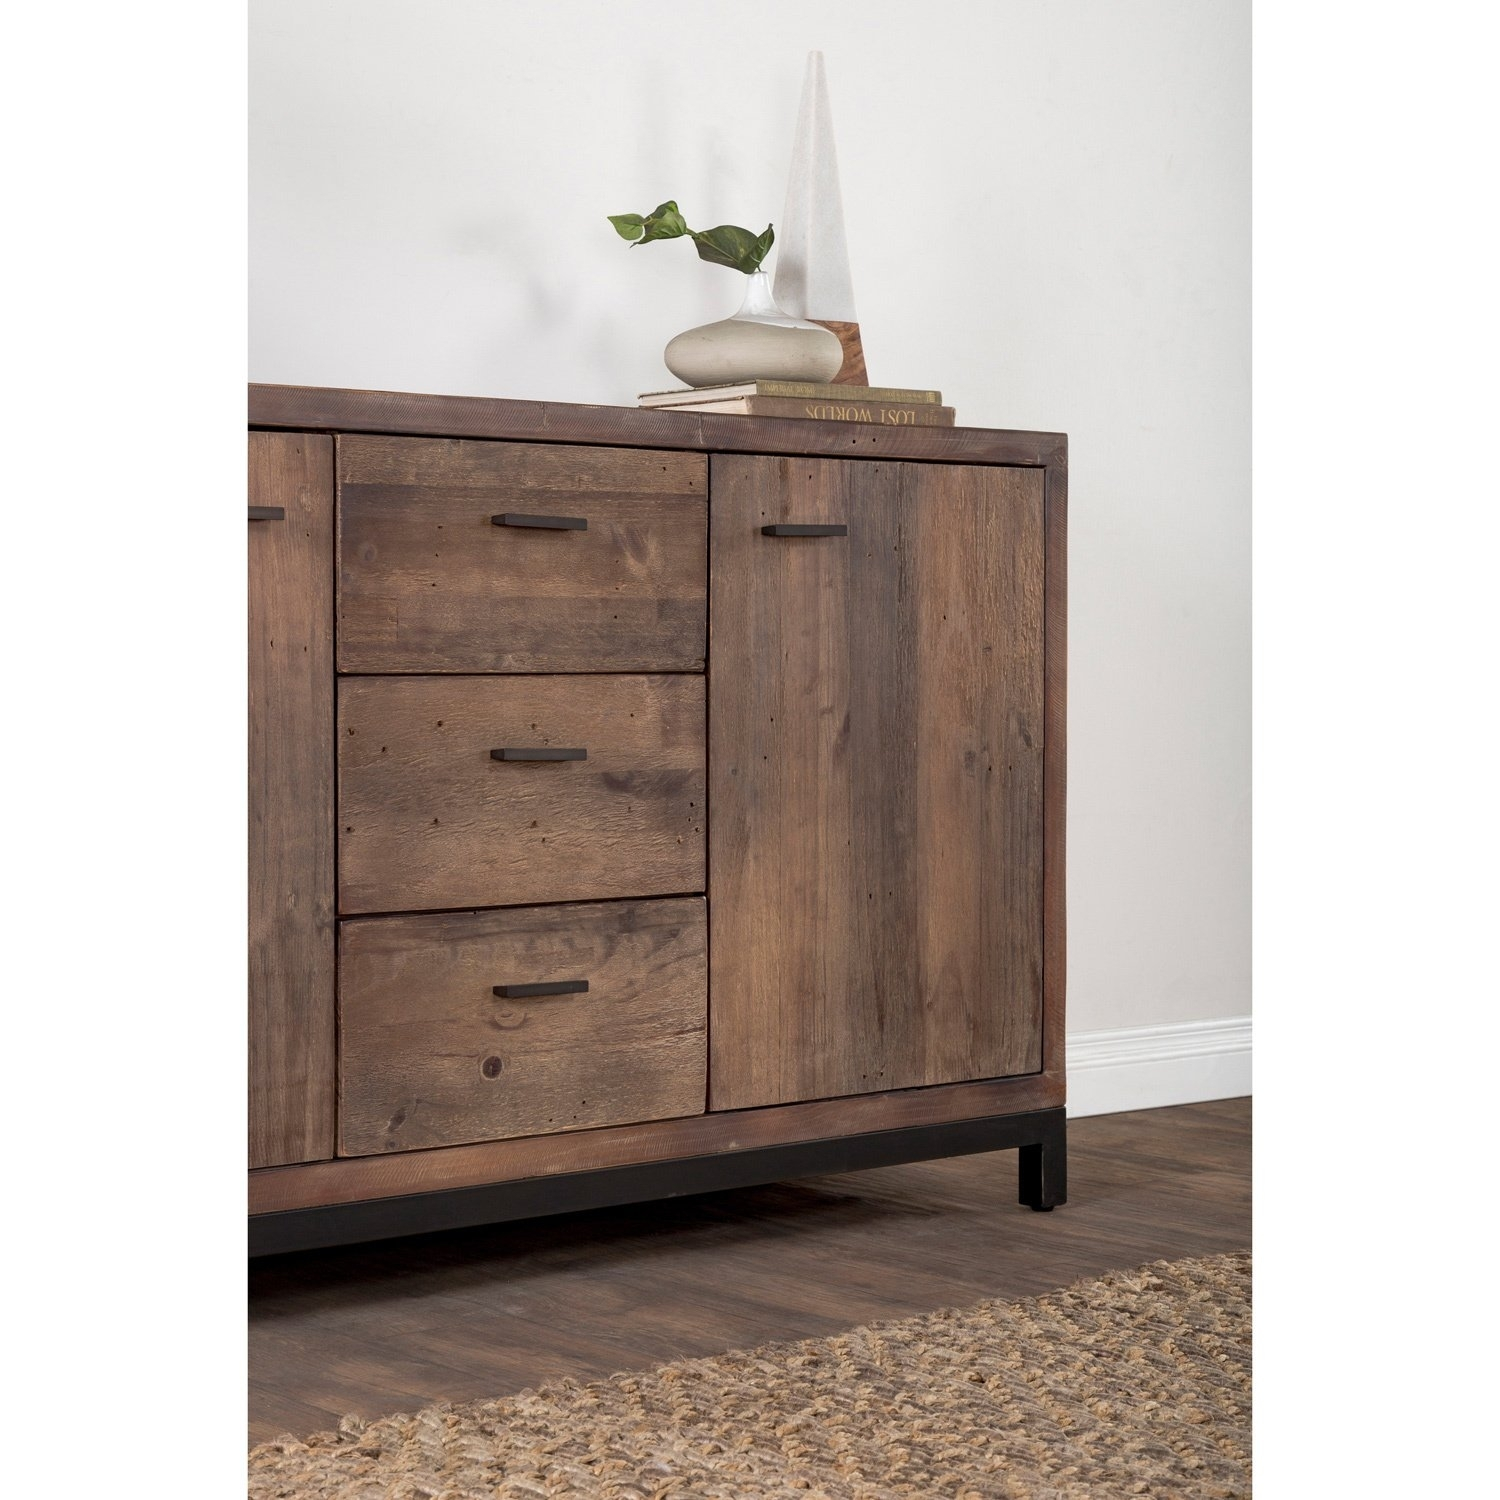 Shop Klamath Reclaimed Pine 3 Drawer 2 Door Sideboardkosas Home Within 2017 Reclaimed Pine & Iron 4 Door Sideboards (View 18 of 20)